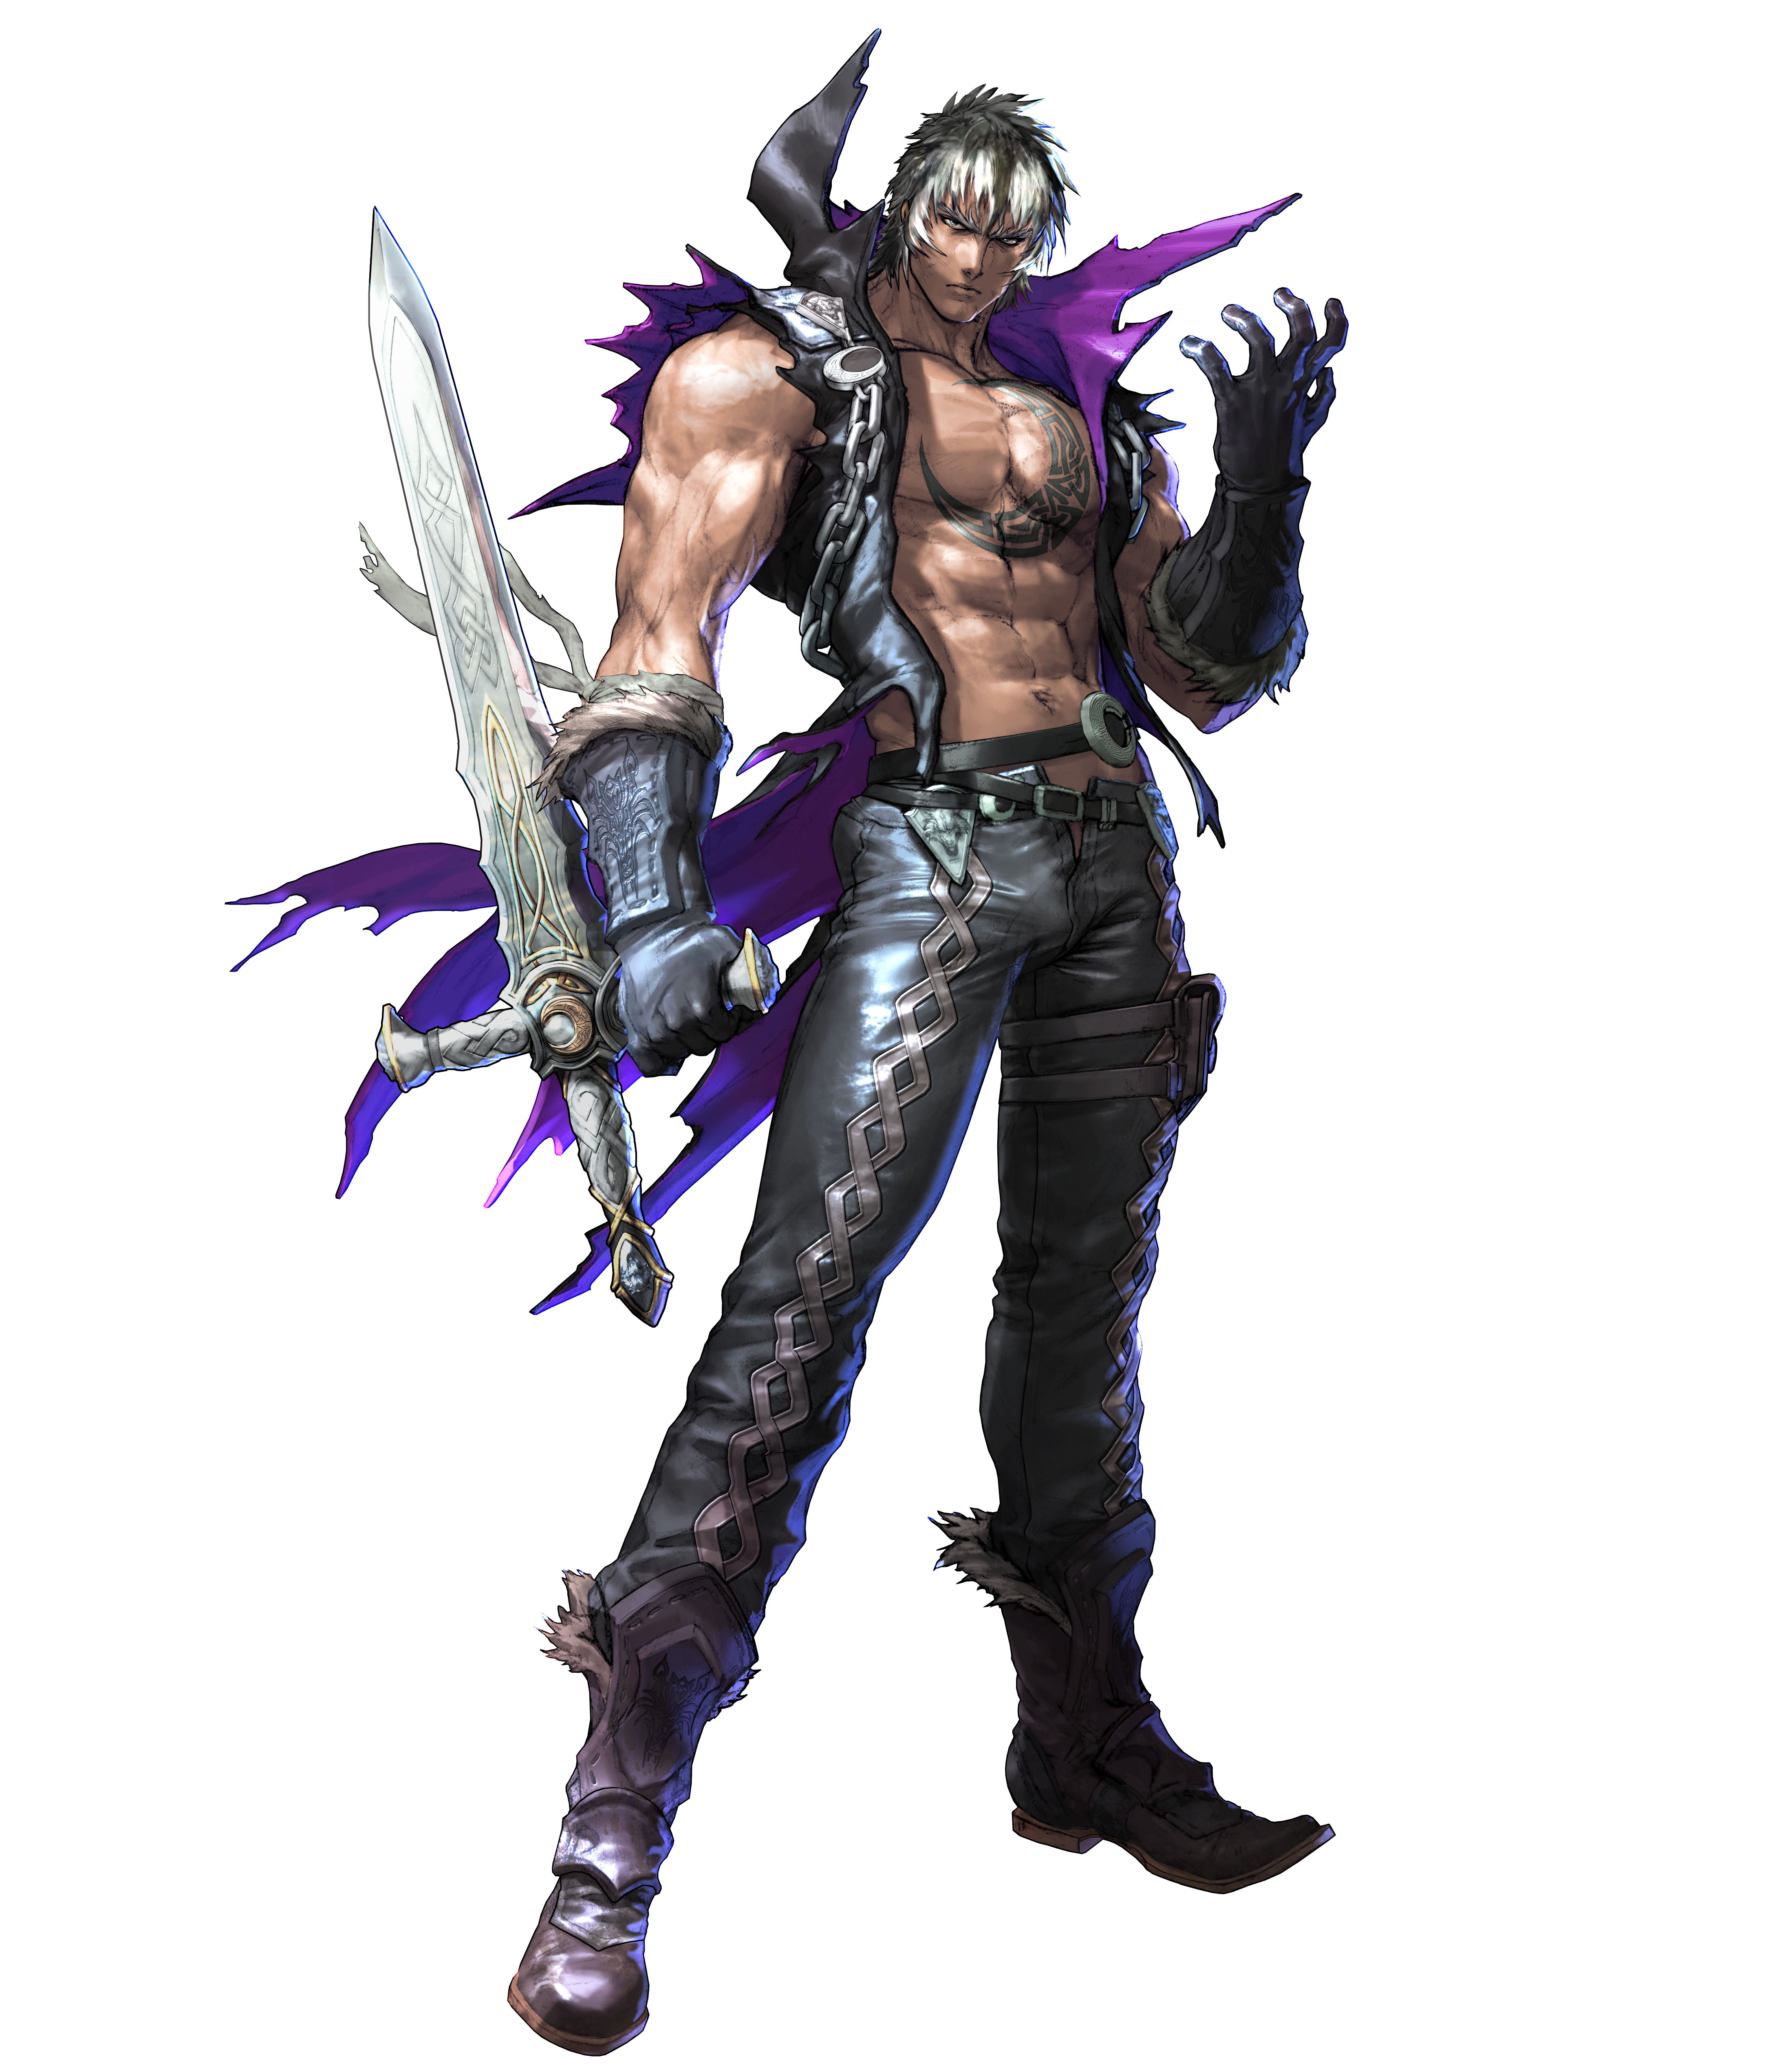 Soulcalibur V / Characters - TV Tropes